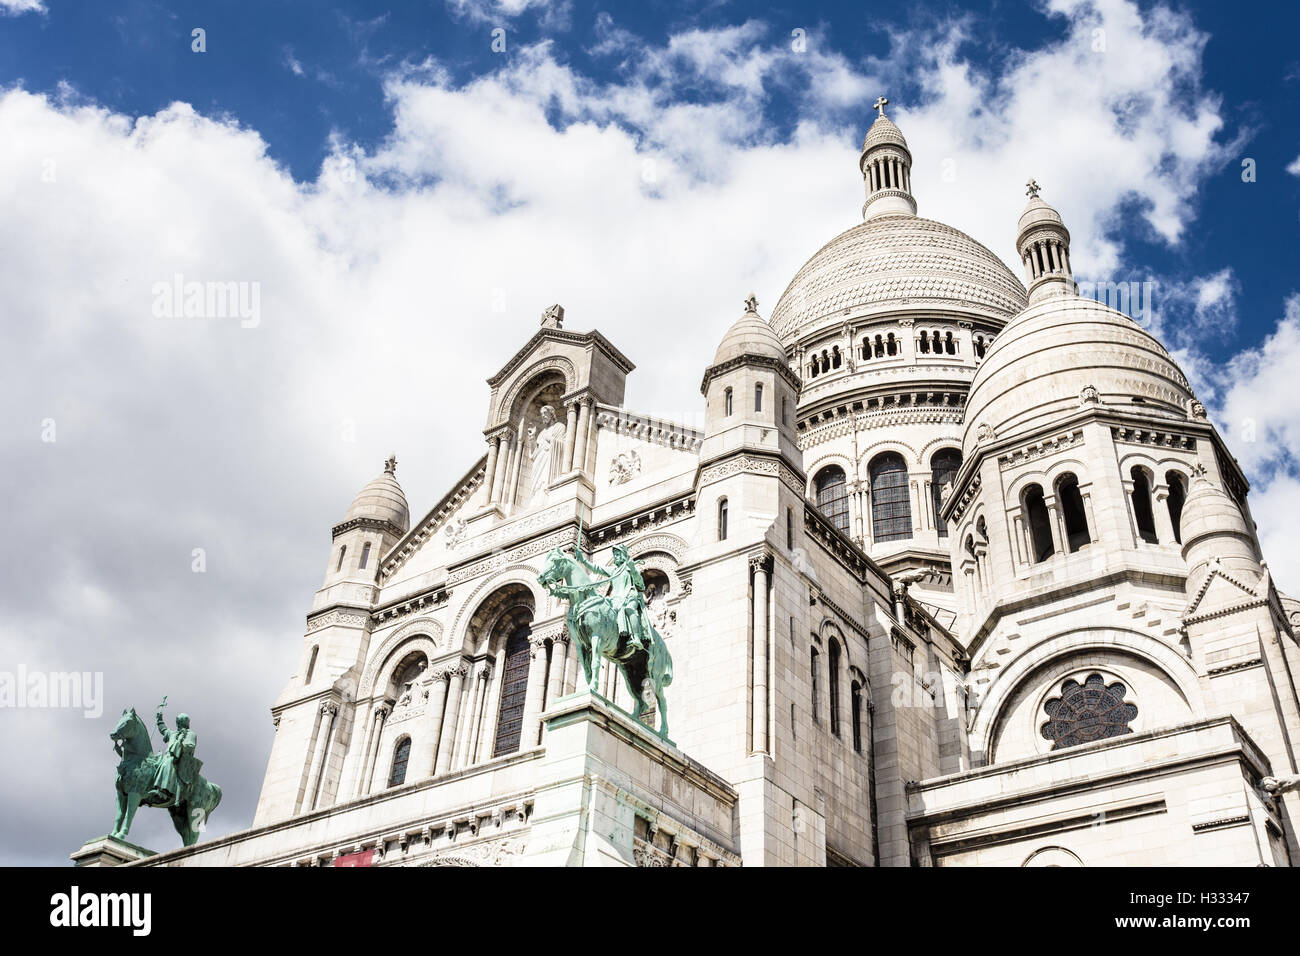 Basilica of the Sacred Heart of Jesus in Montmartre in Paris, France capital city. - Stock Image